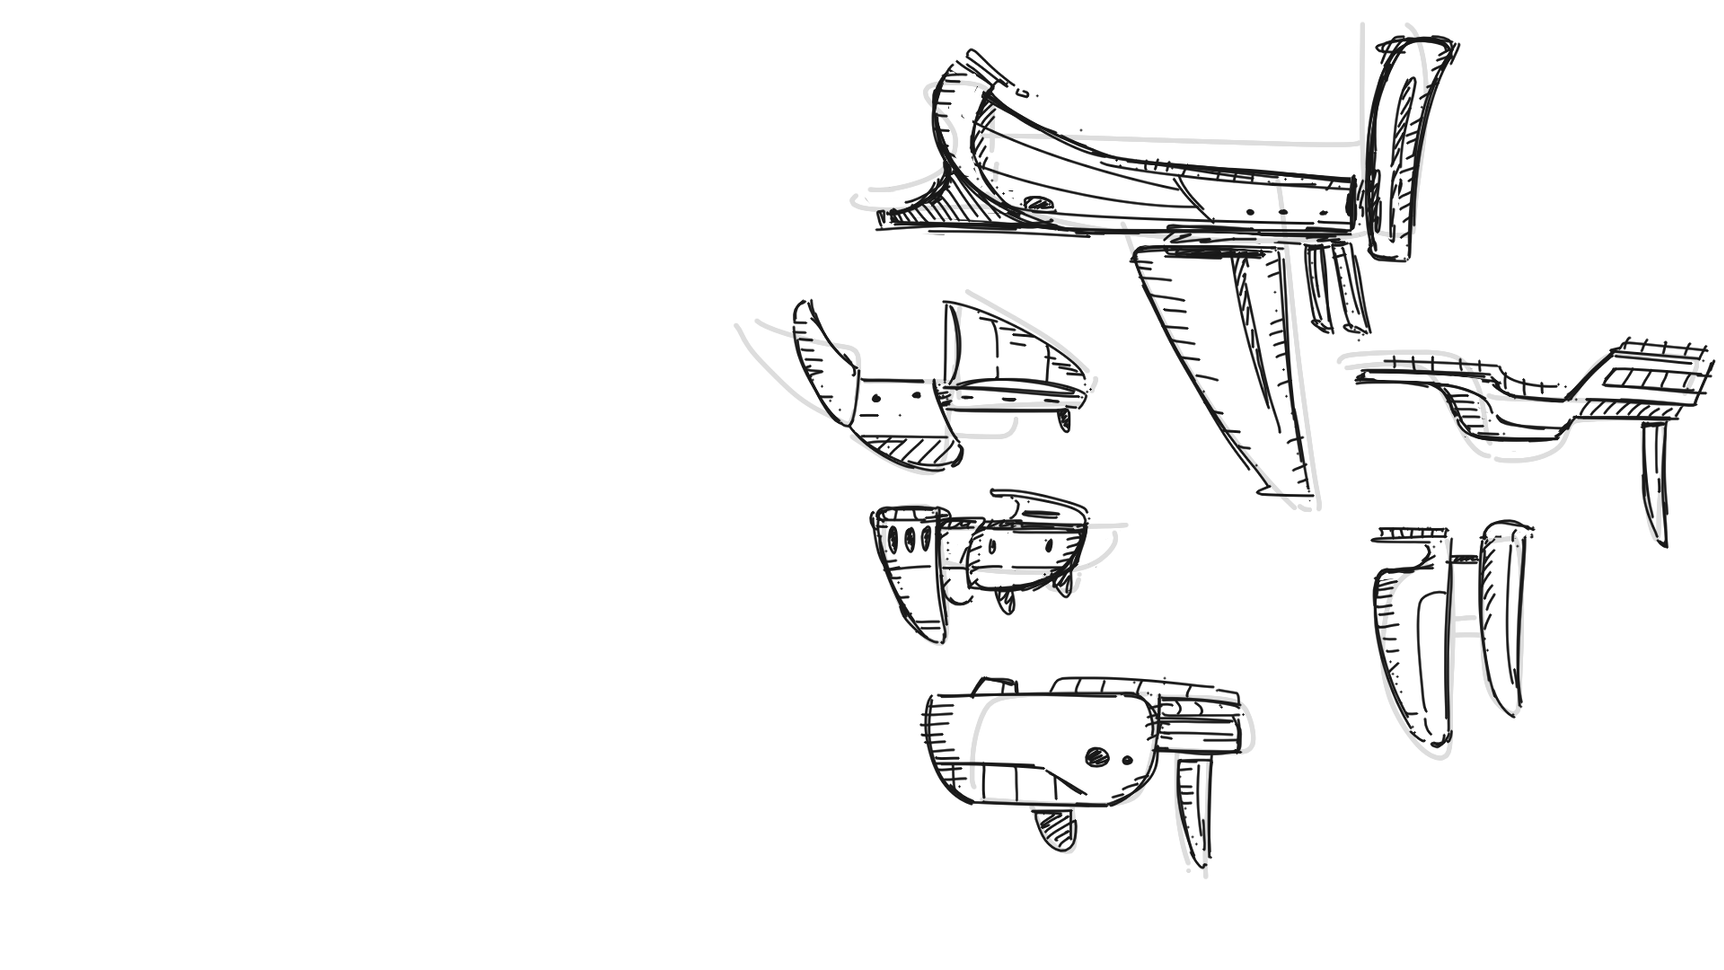 Initial ship sketches 2